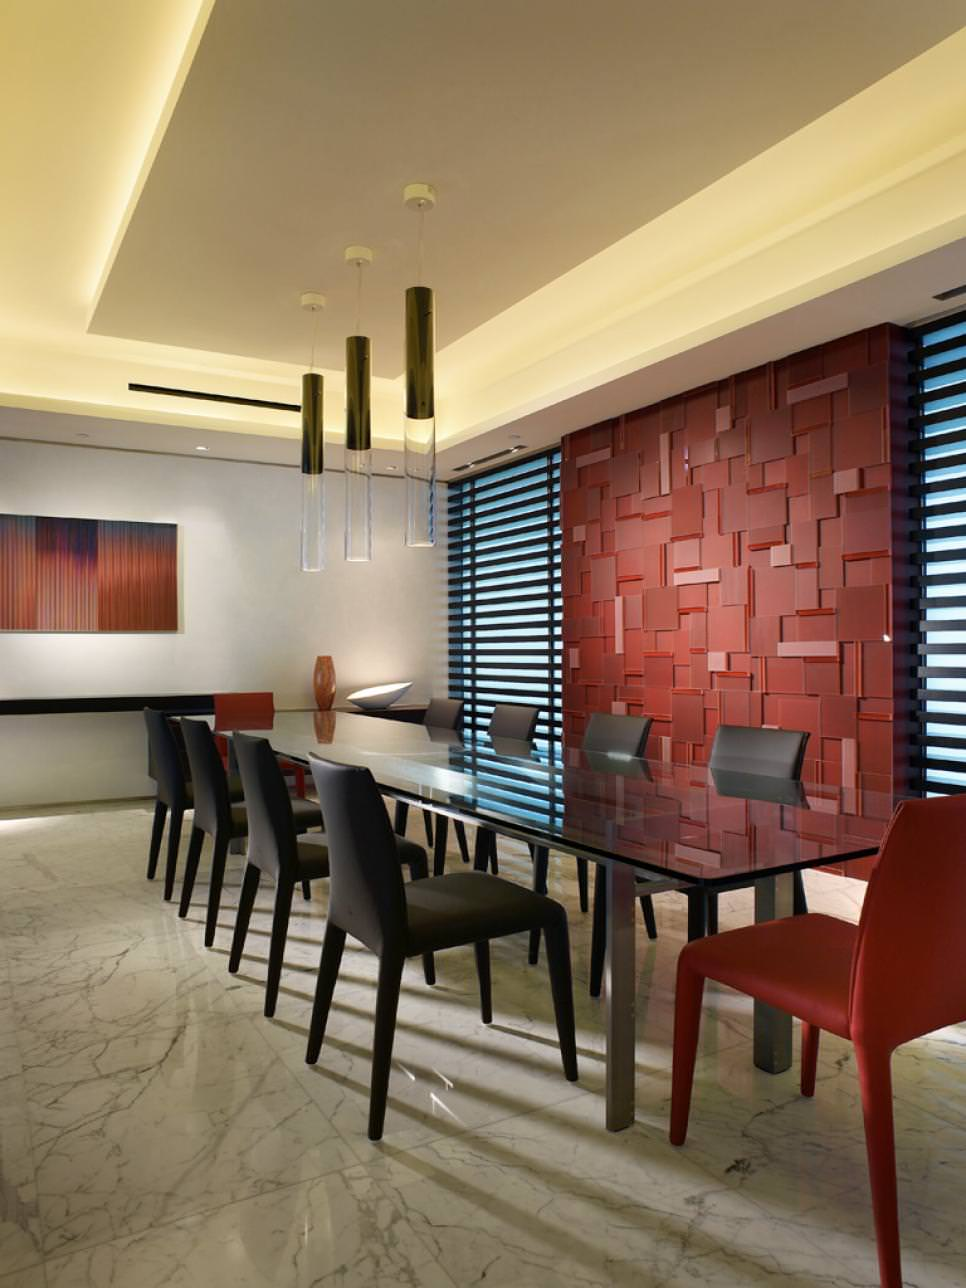 Wall Design In Dining Room : Dining room wall designs decor ideas design trends